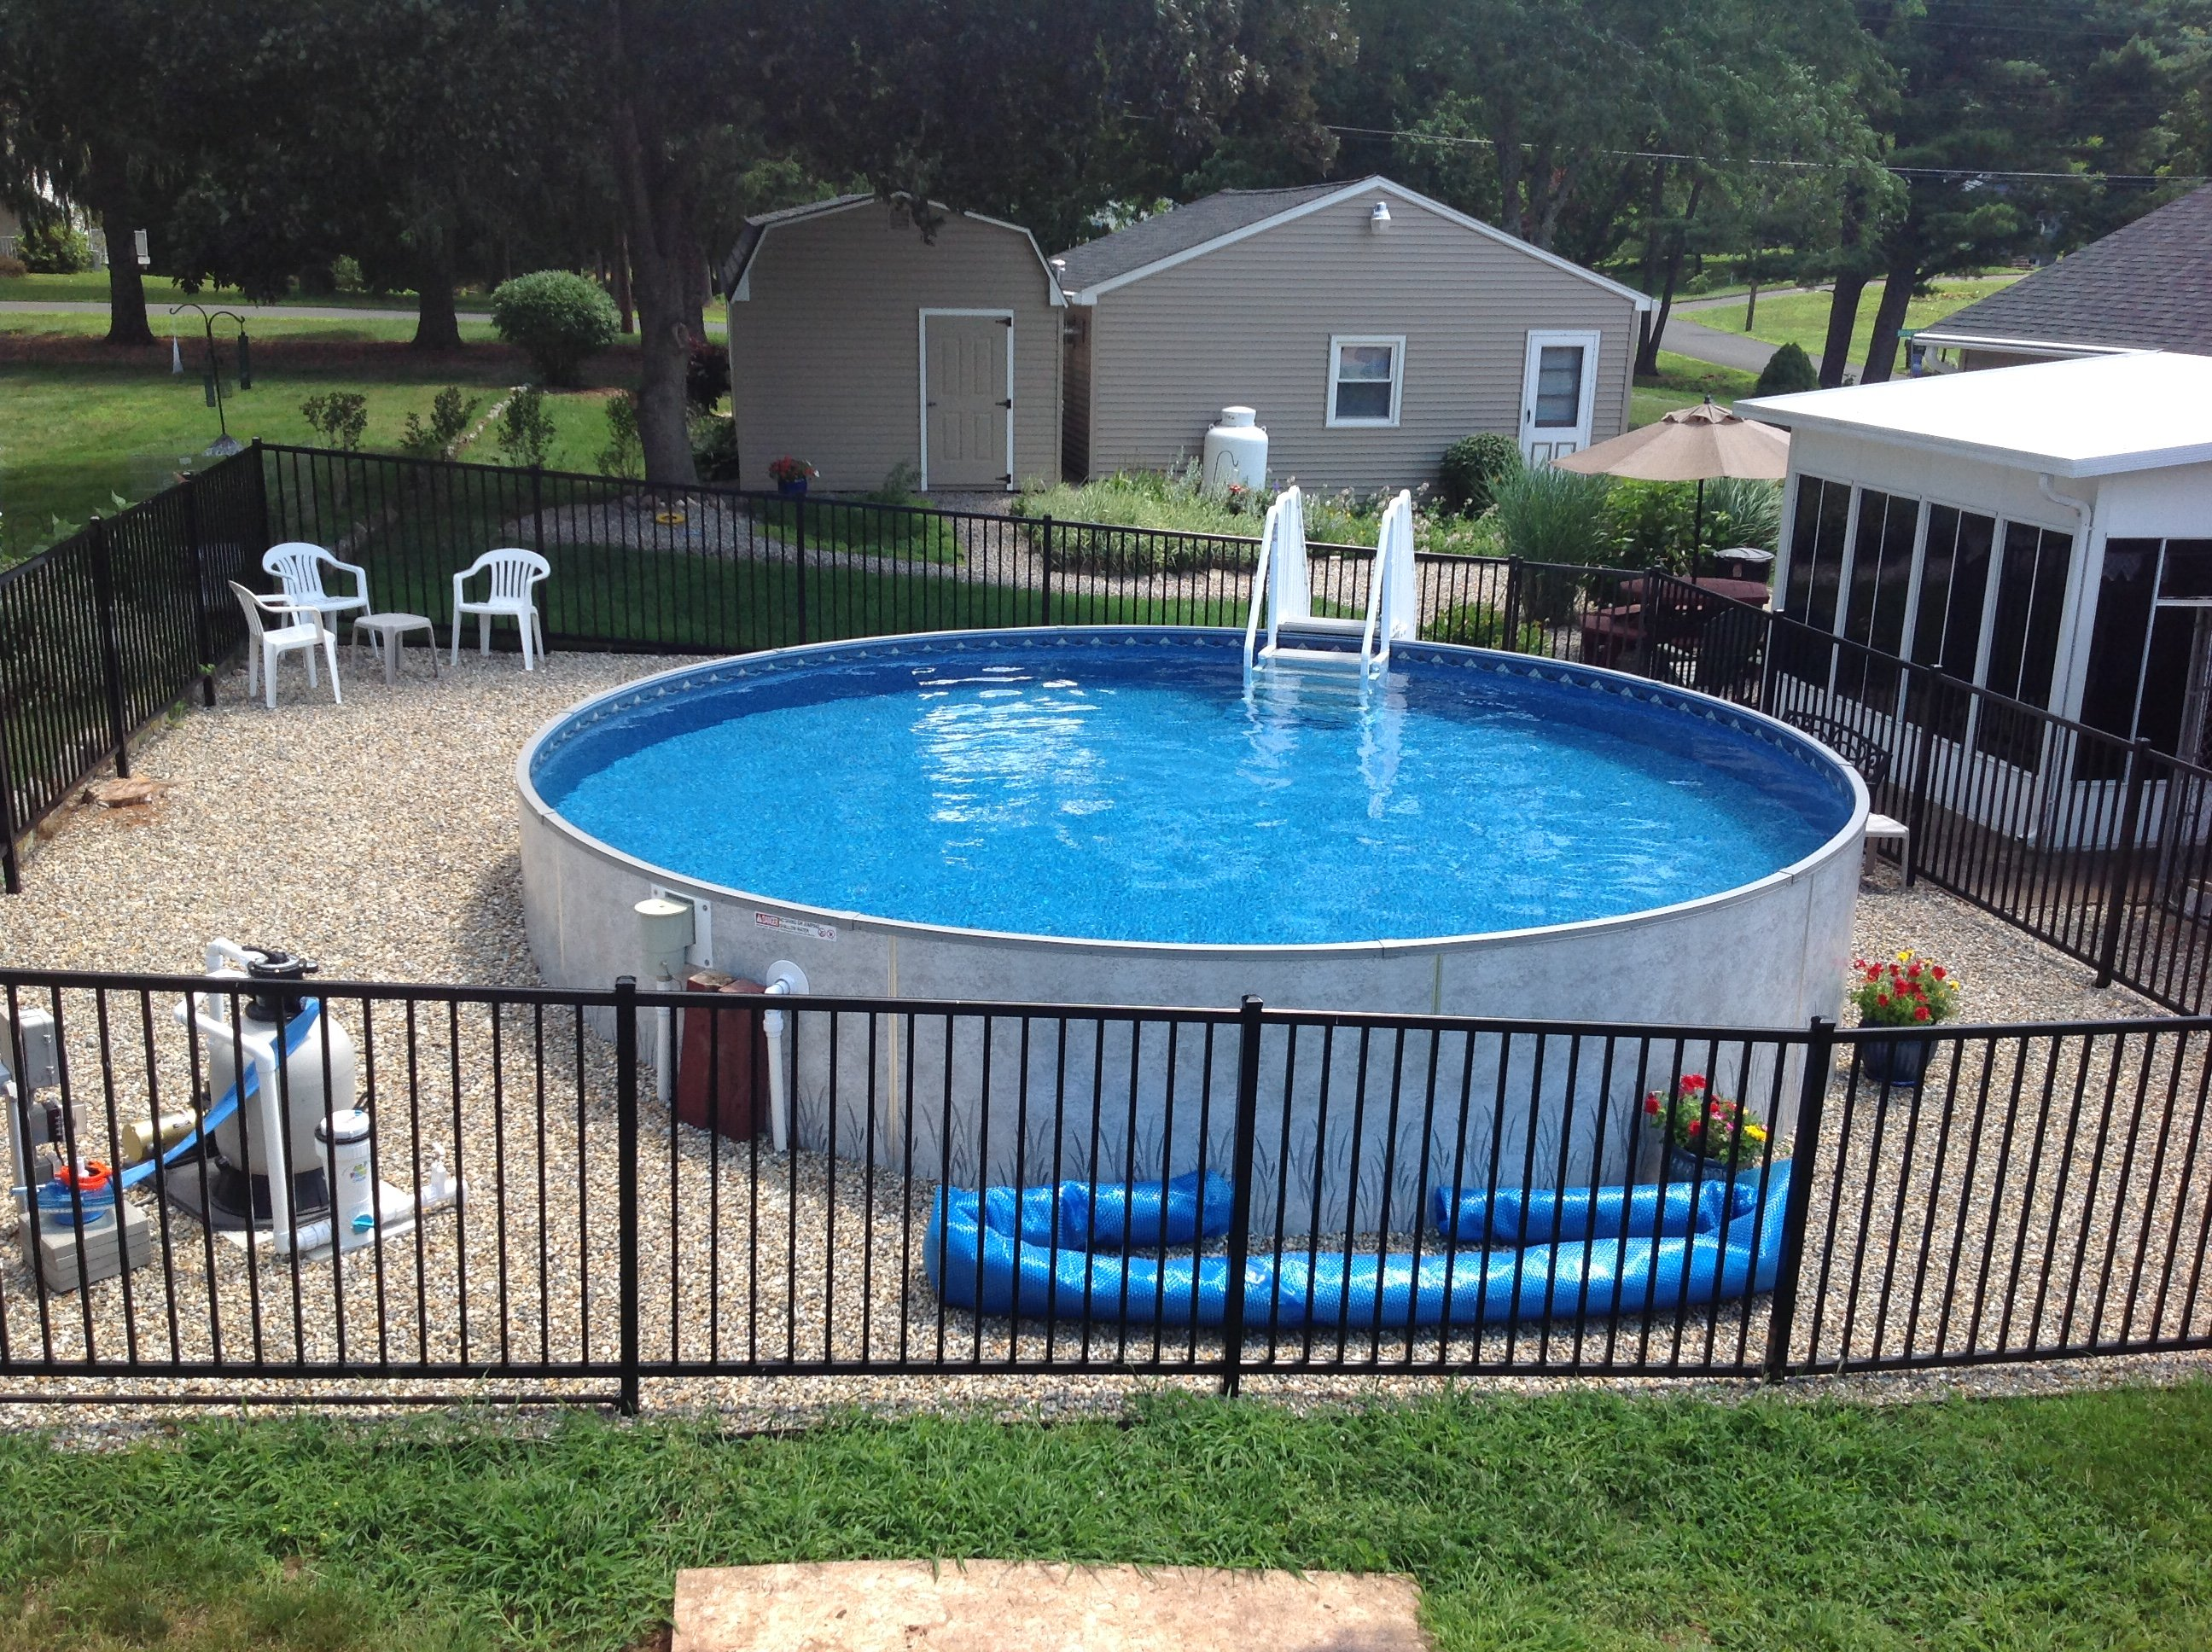 Above ground pools sabrina pools coventry ct for 16x32 pool design